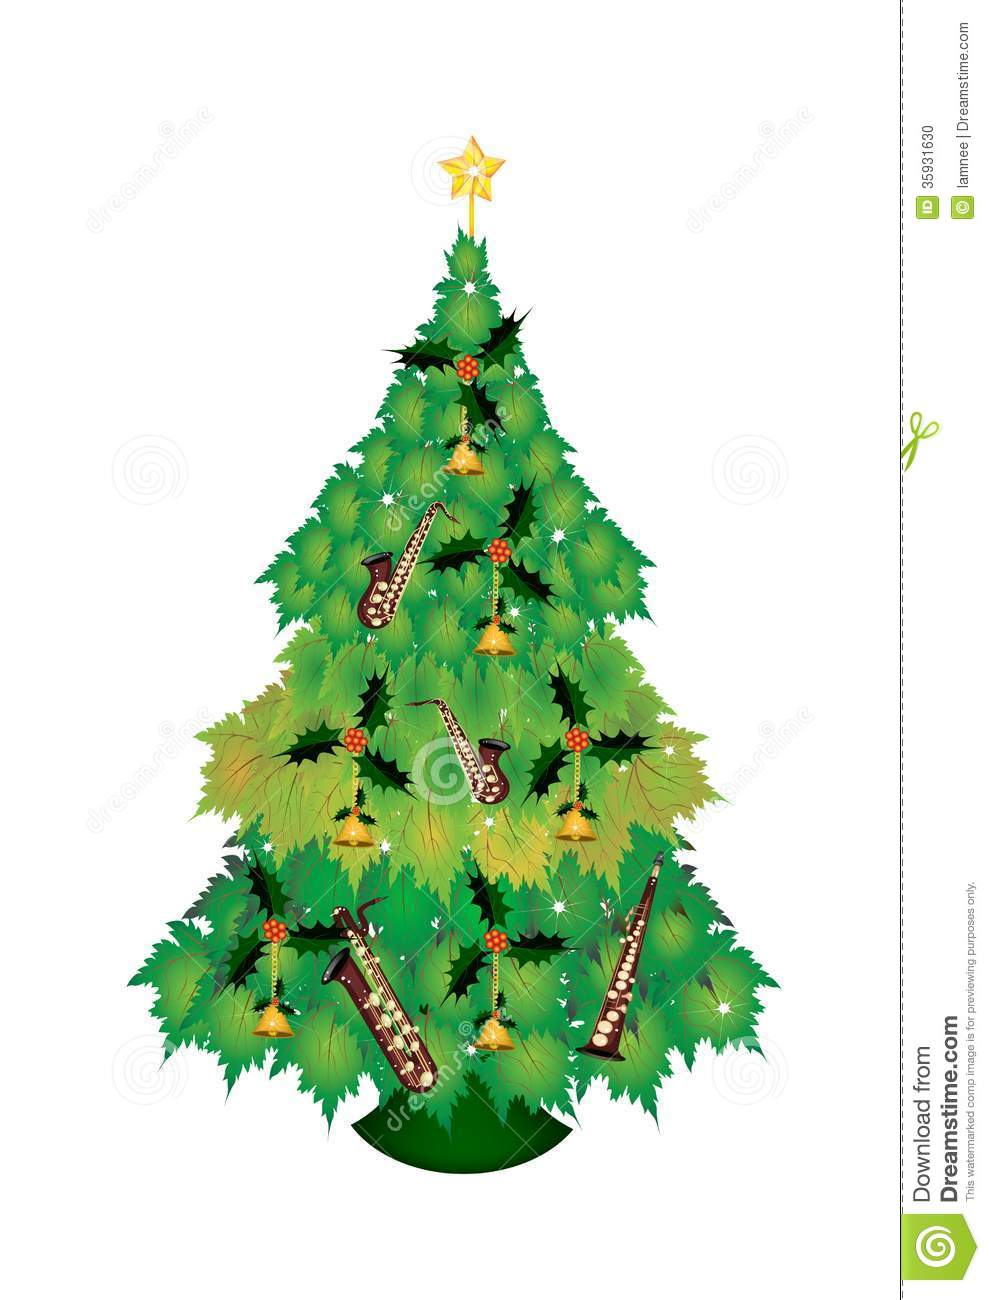 Baum Sternzeichen Christmas Tree Of Green Maple Leaves With Ornament Stock